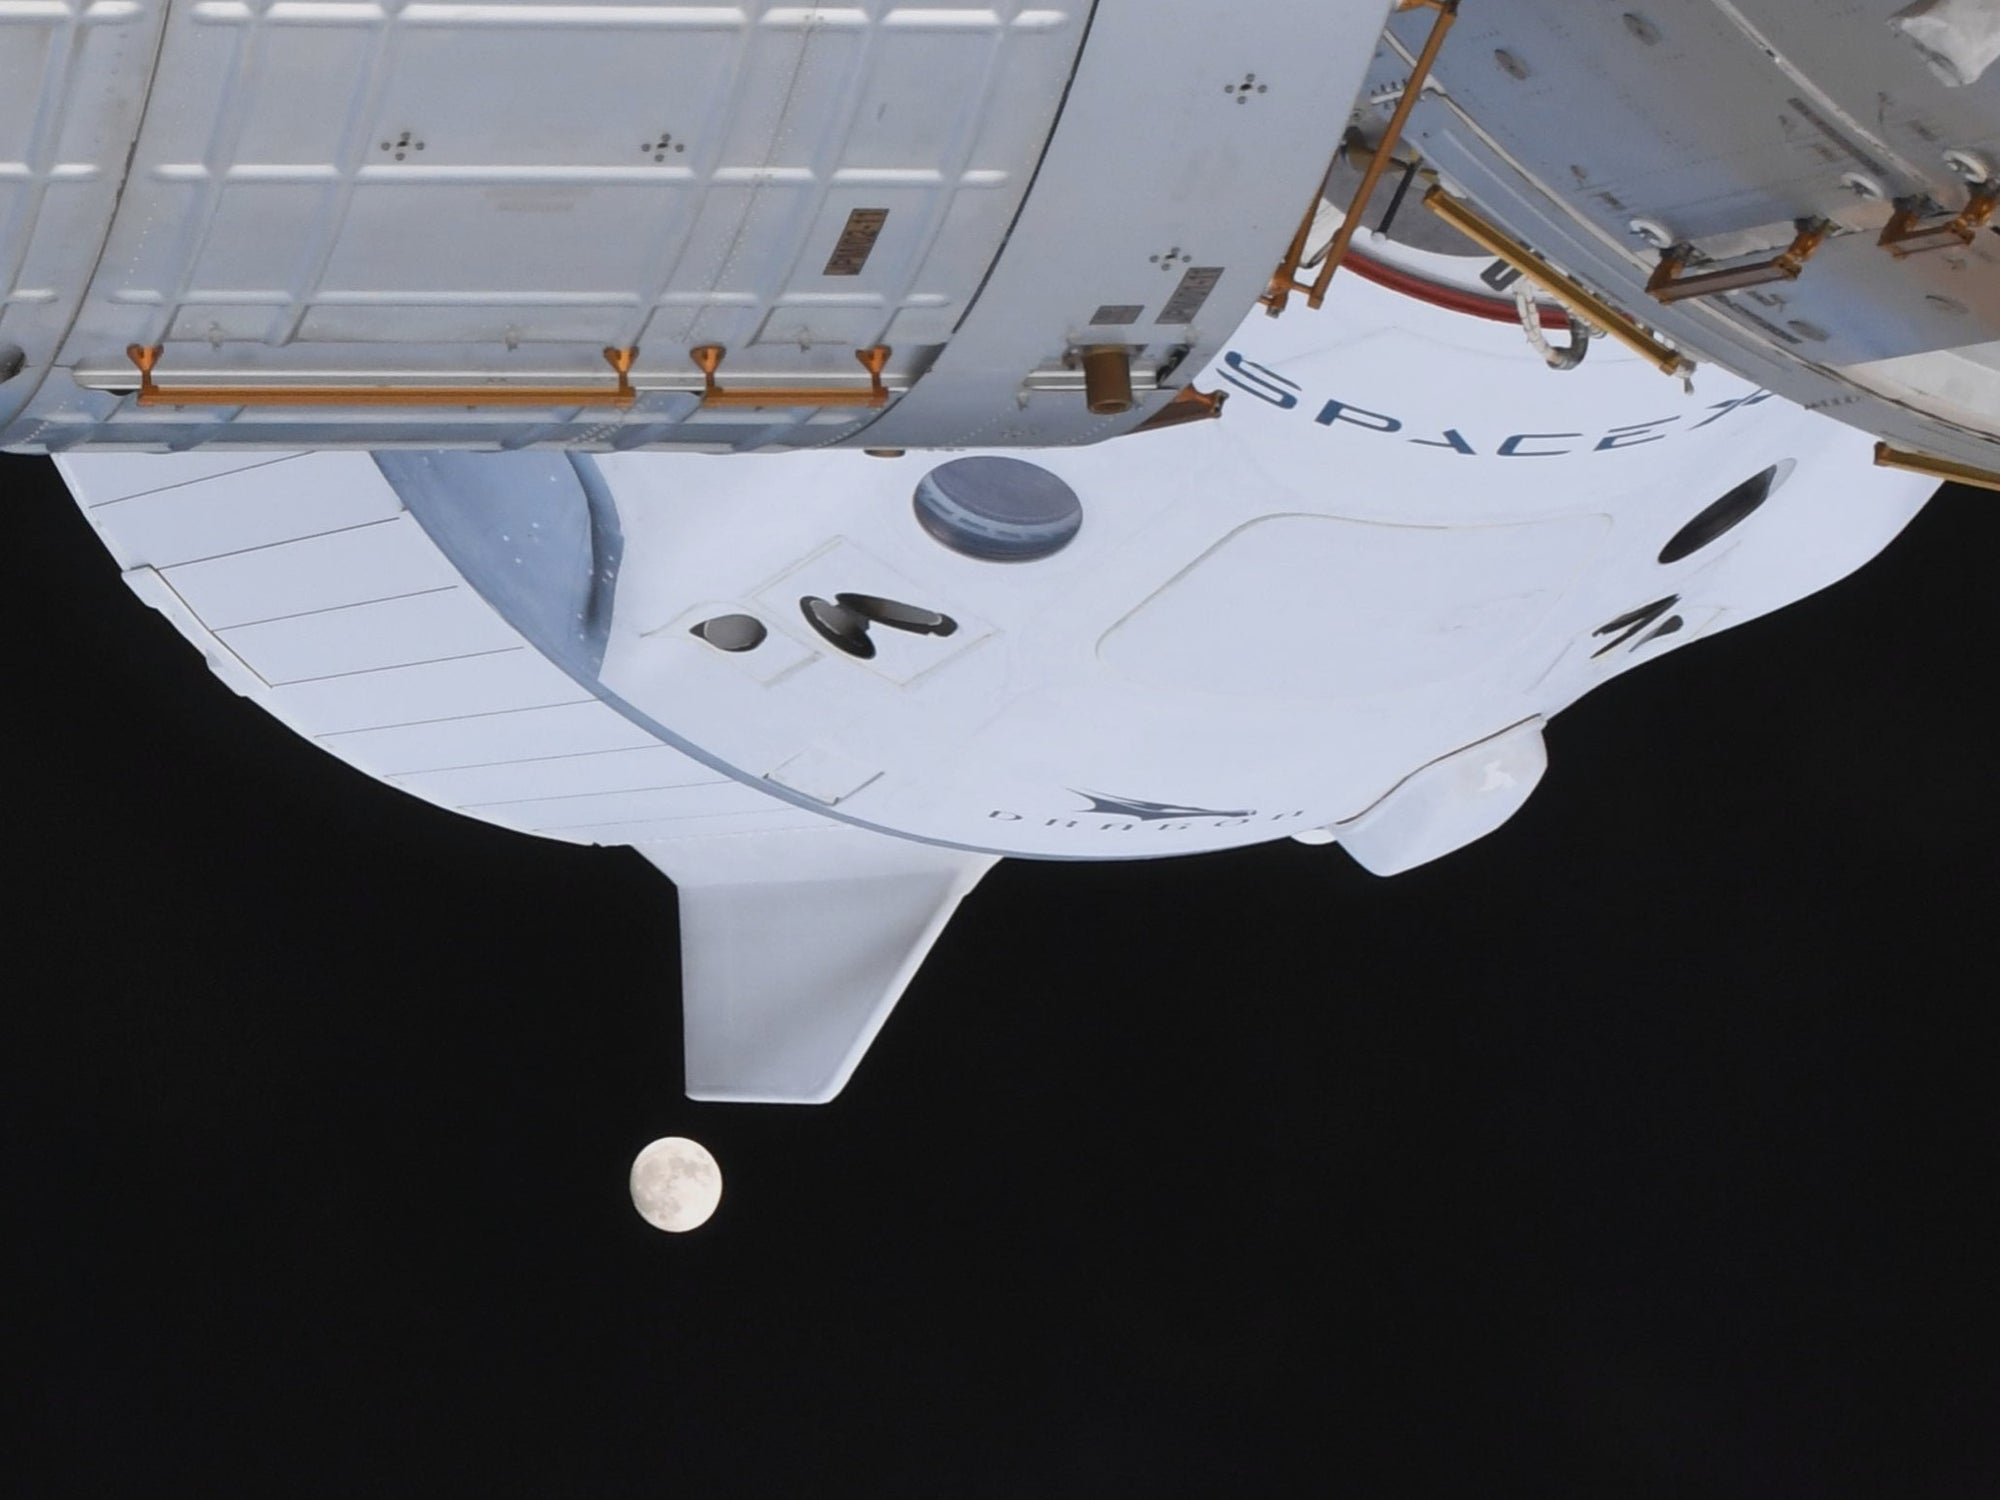 The Space Station will have a pair of SpaceX Dragon spacecrafts docked simultaneously